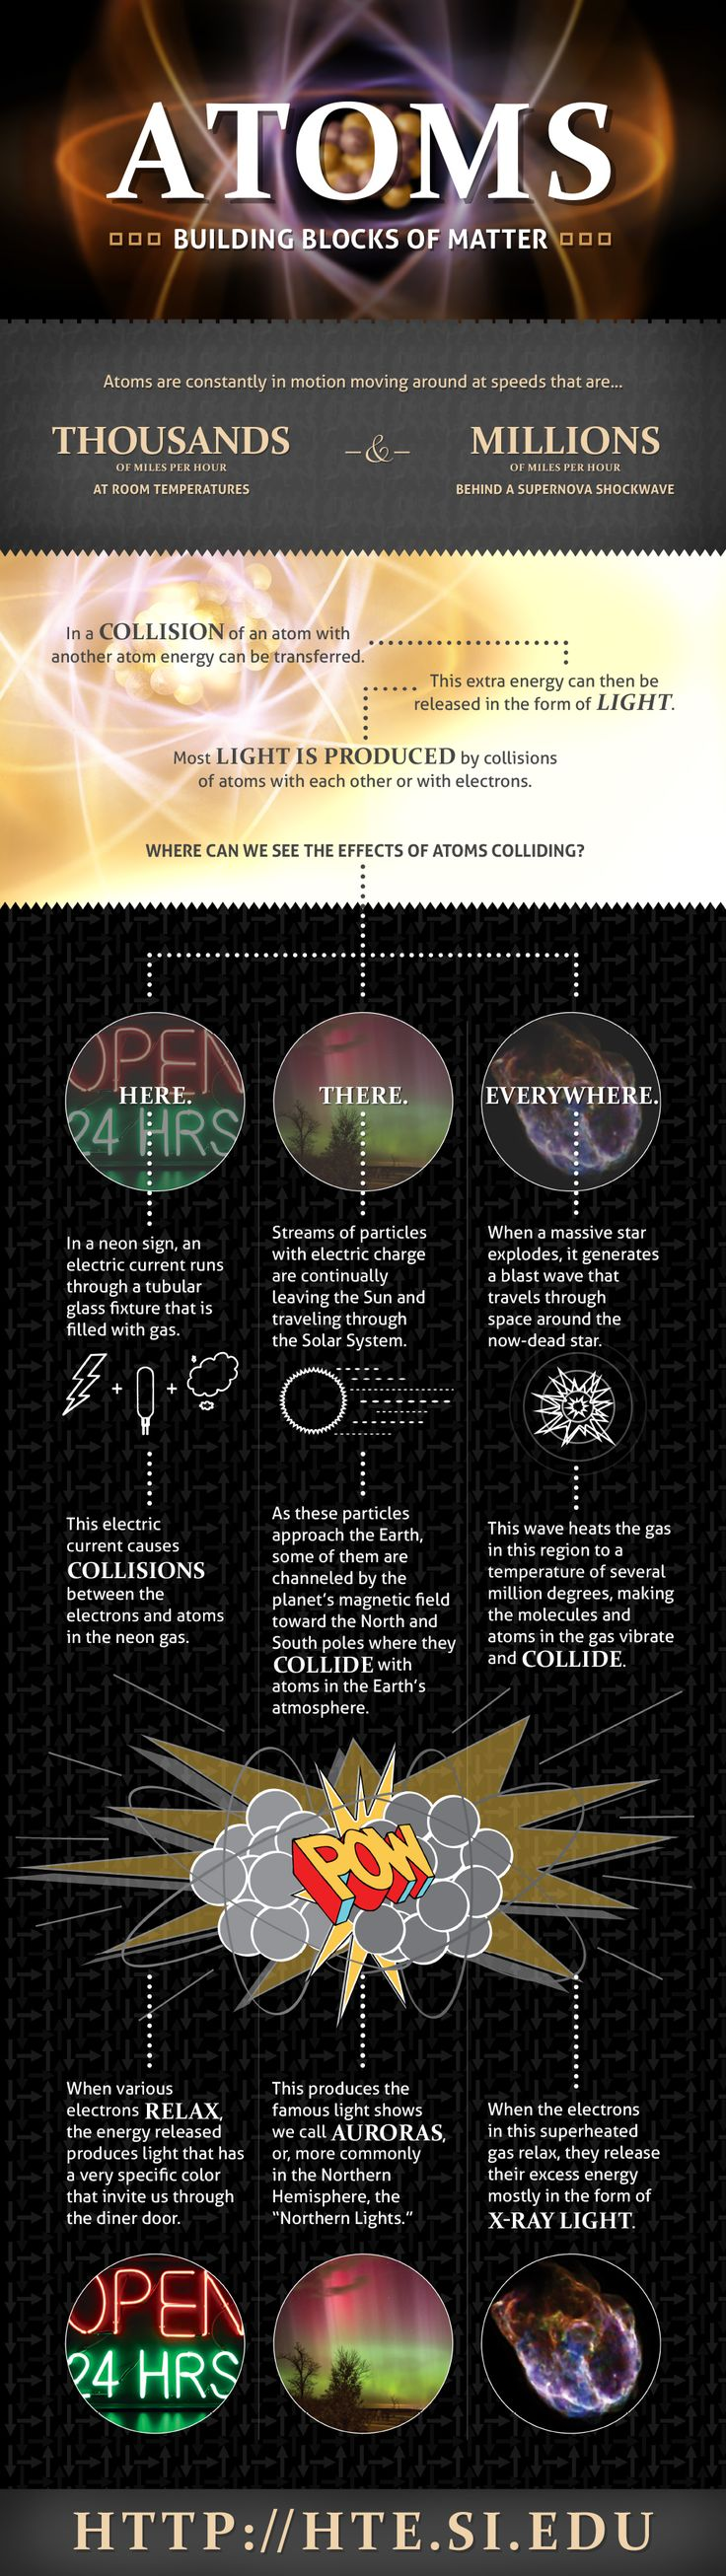 How much do you know about atoms? This infographic gives you a glimpse on how they can effect things from neon signs to supernovas. (Illustration: NASA/CXC/M.Weiss)